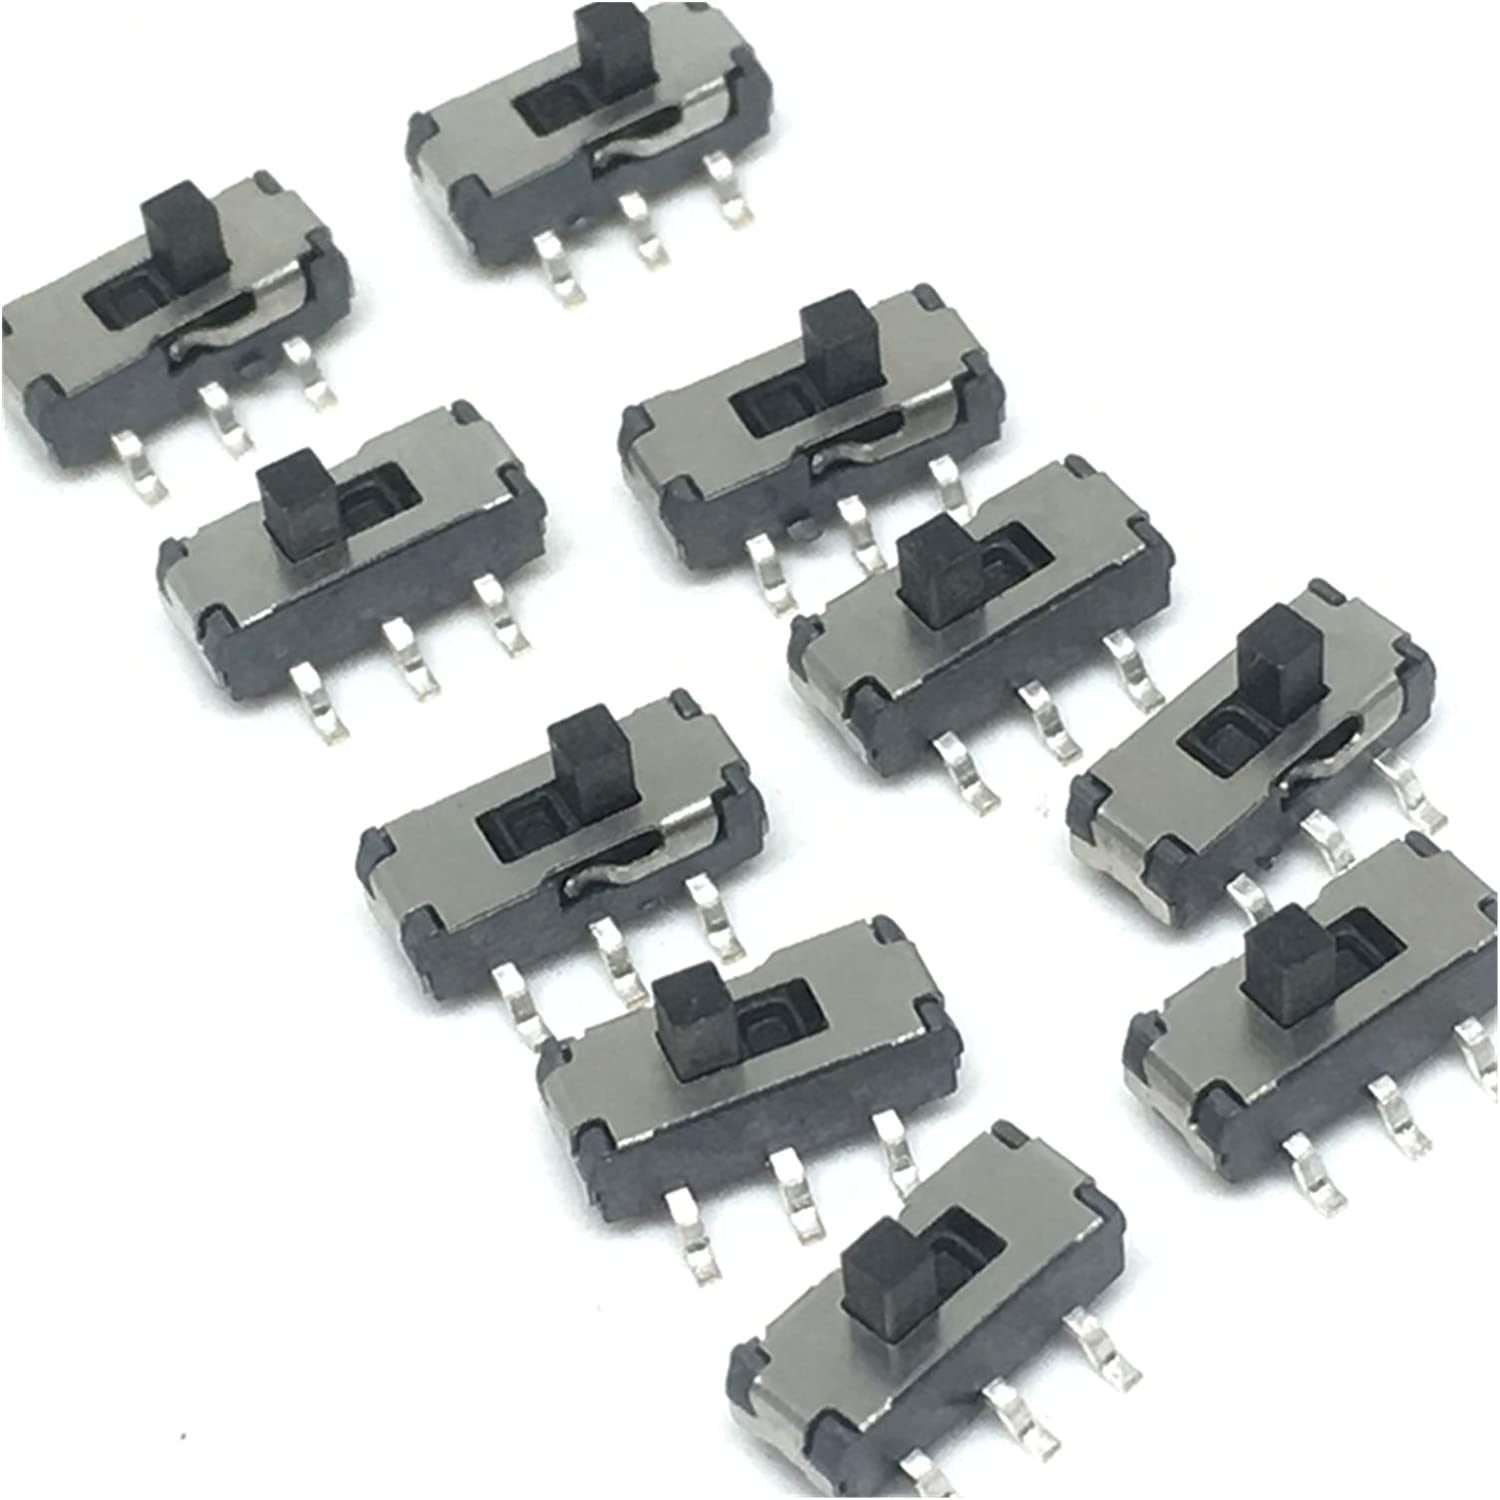 OFFicial mail order XIALITR Micro Switch 10Pcs MSS22D18 Cheap SALE Start SMT Slide SMD Mini Miniature